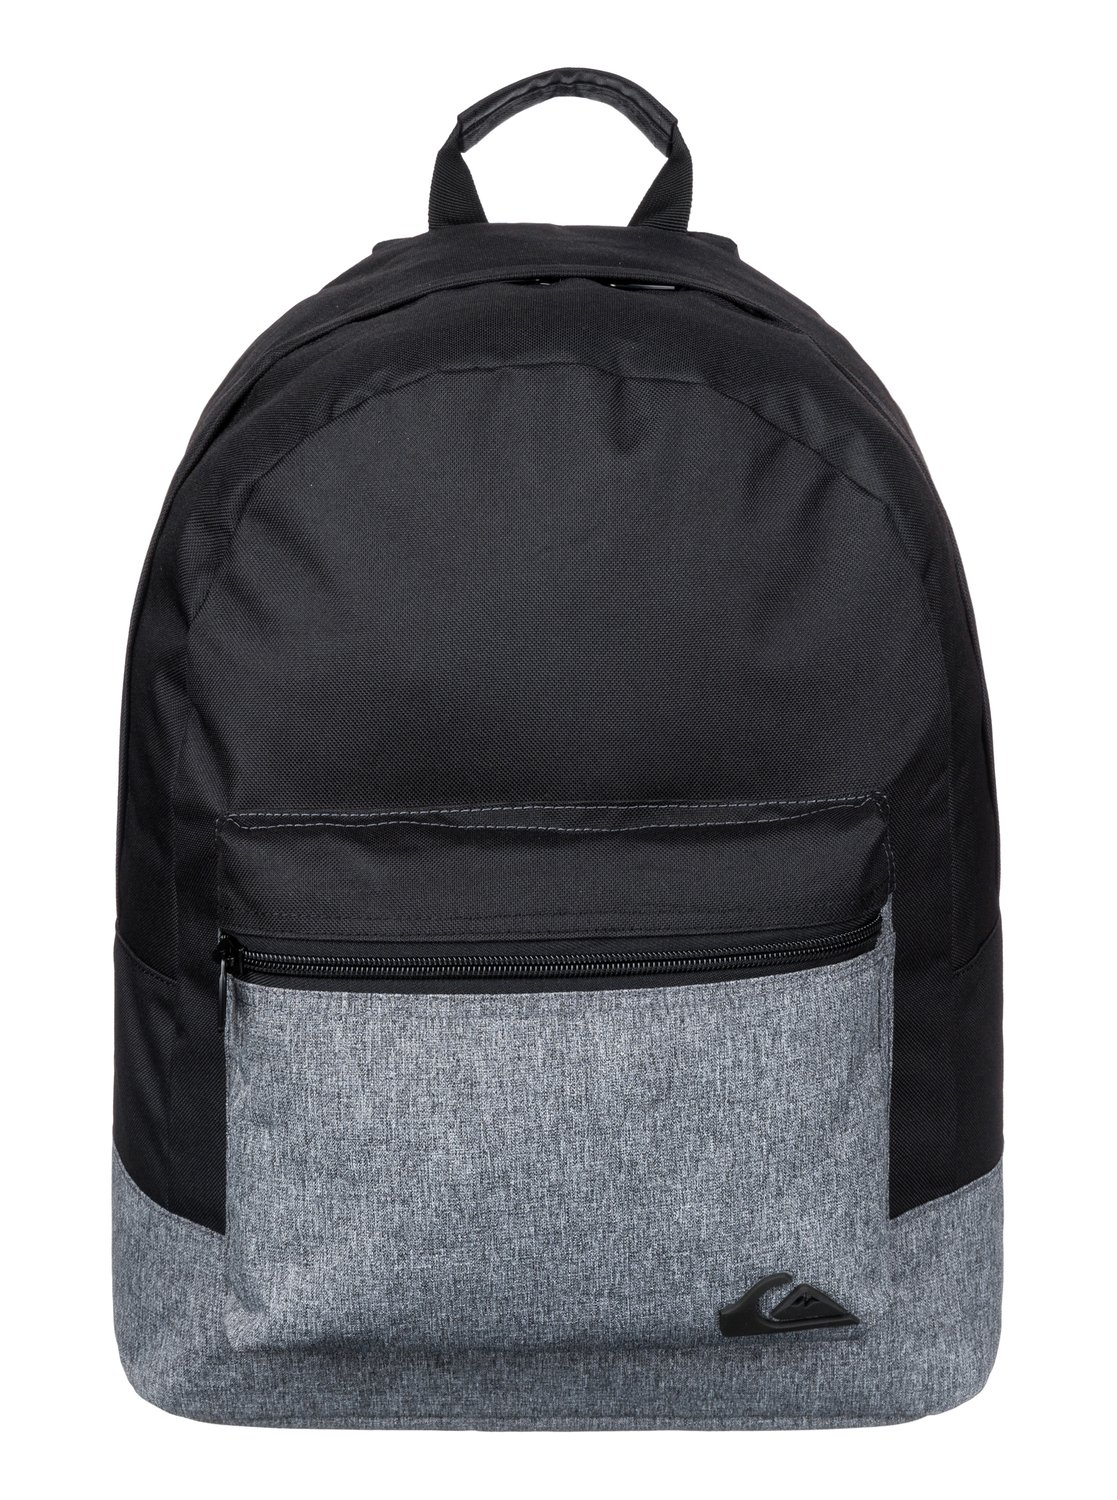 Best Looking Backpacks l7firc4Y